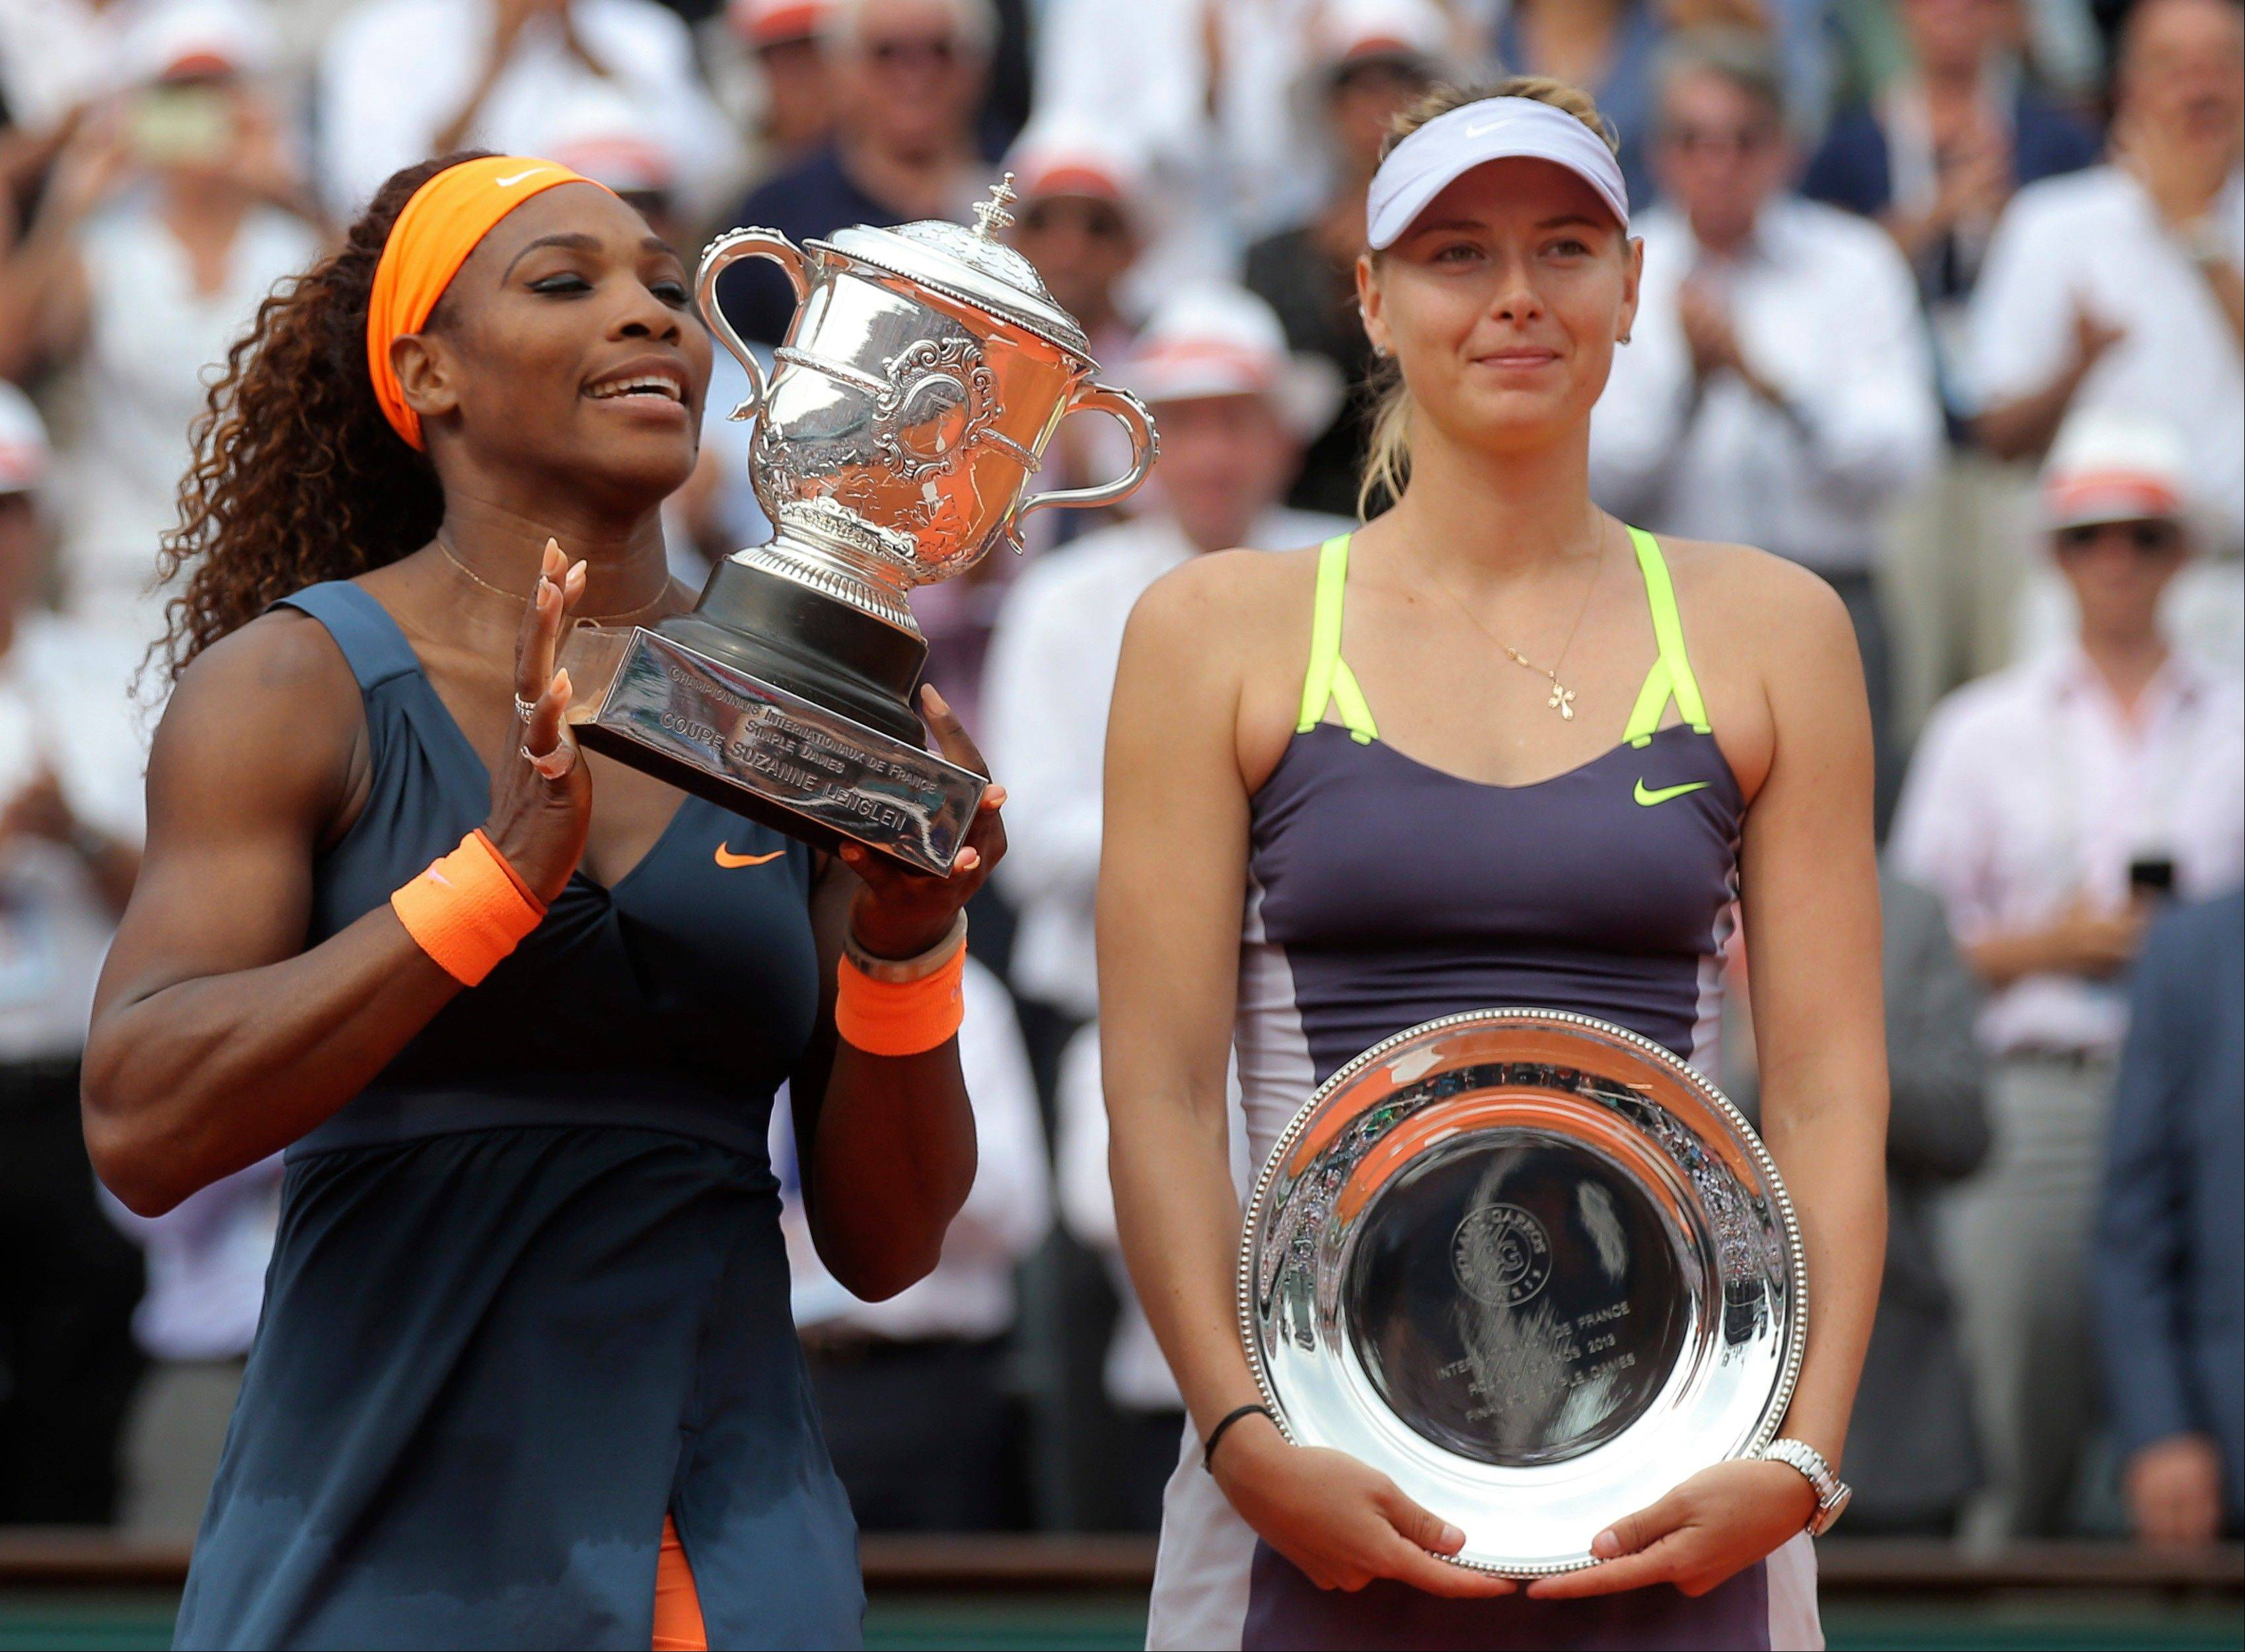 Serena Williams, of the U.S., left, holds the winner's cup after defeating Russia's Maria Sharapova after the Women's final match of the French Open tennis tournament at the Roland Garros stadium Saturday, June 8, in Paris. Williams won 6-4, 6-4.